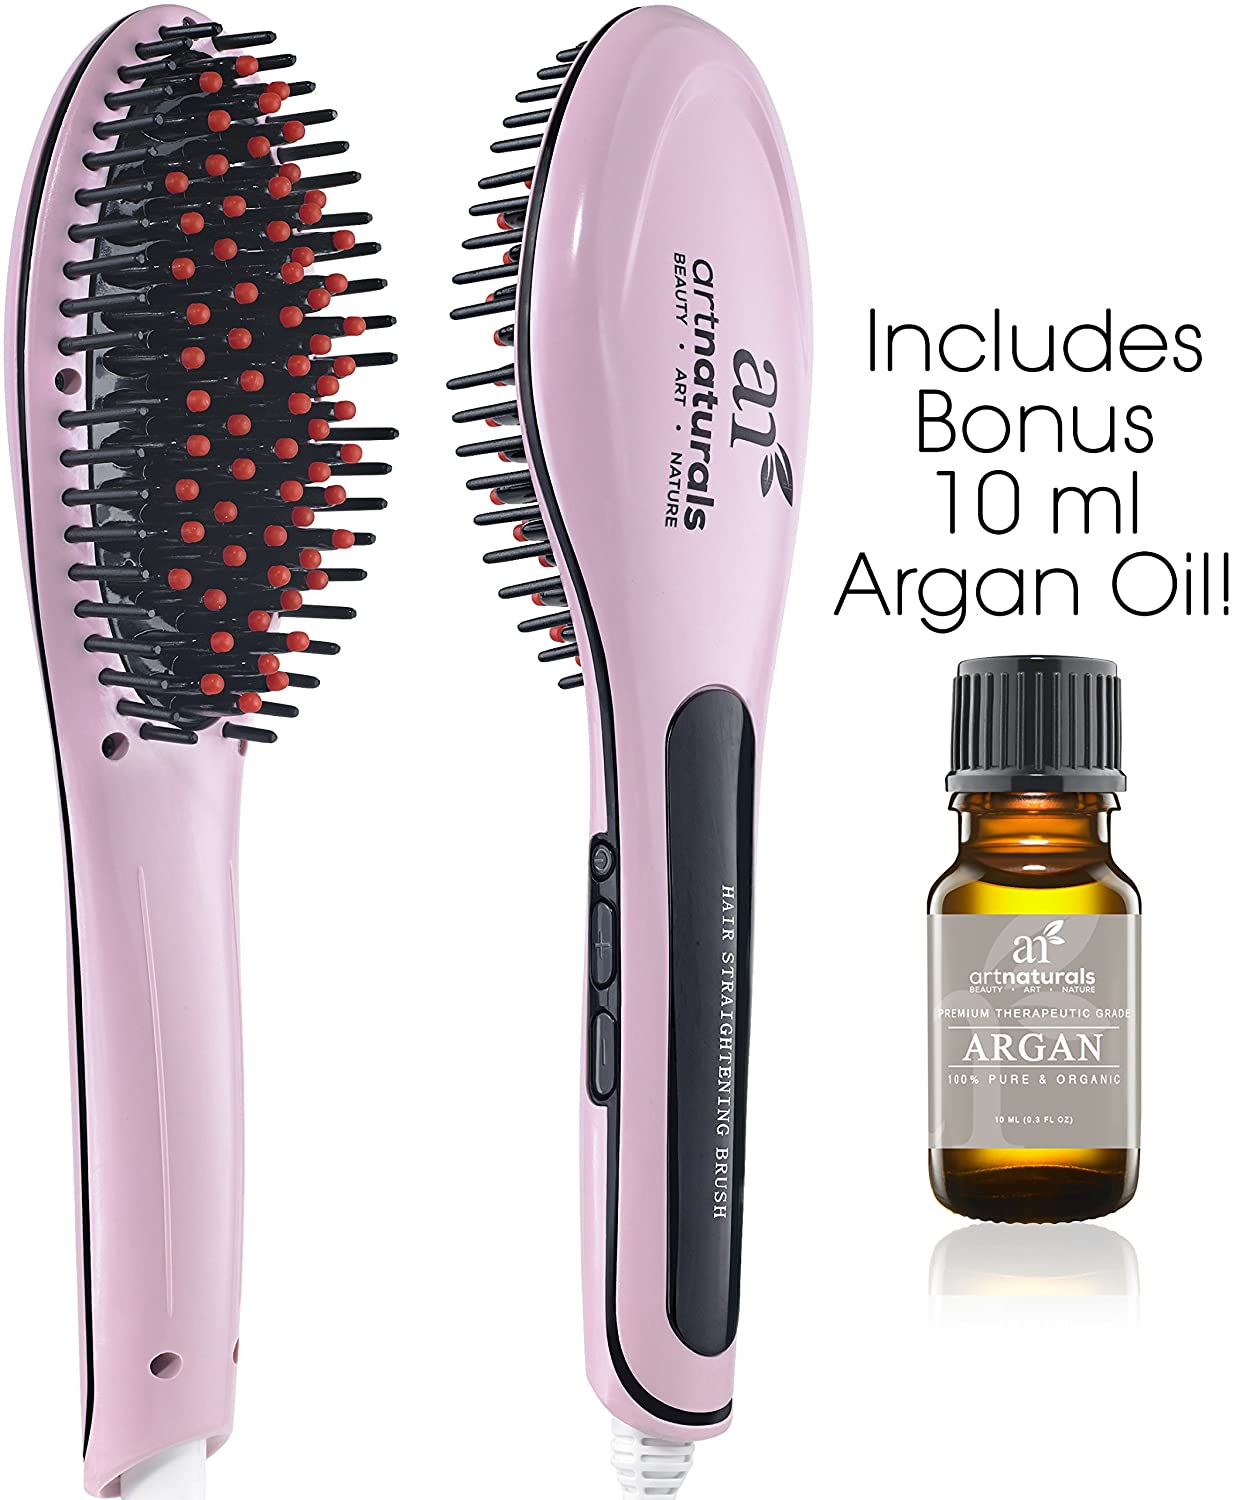 Art Naturals Hair Straightener Brush With Bonus Argan Oil 10ml - Best Ceramic, Anti Static, Electric Heating Detangling Hair Brush (2016 Edition)I